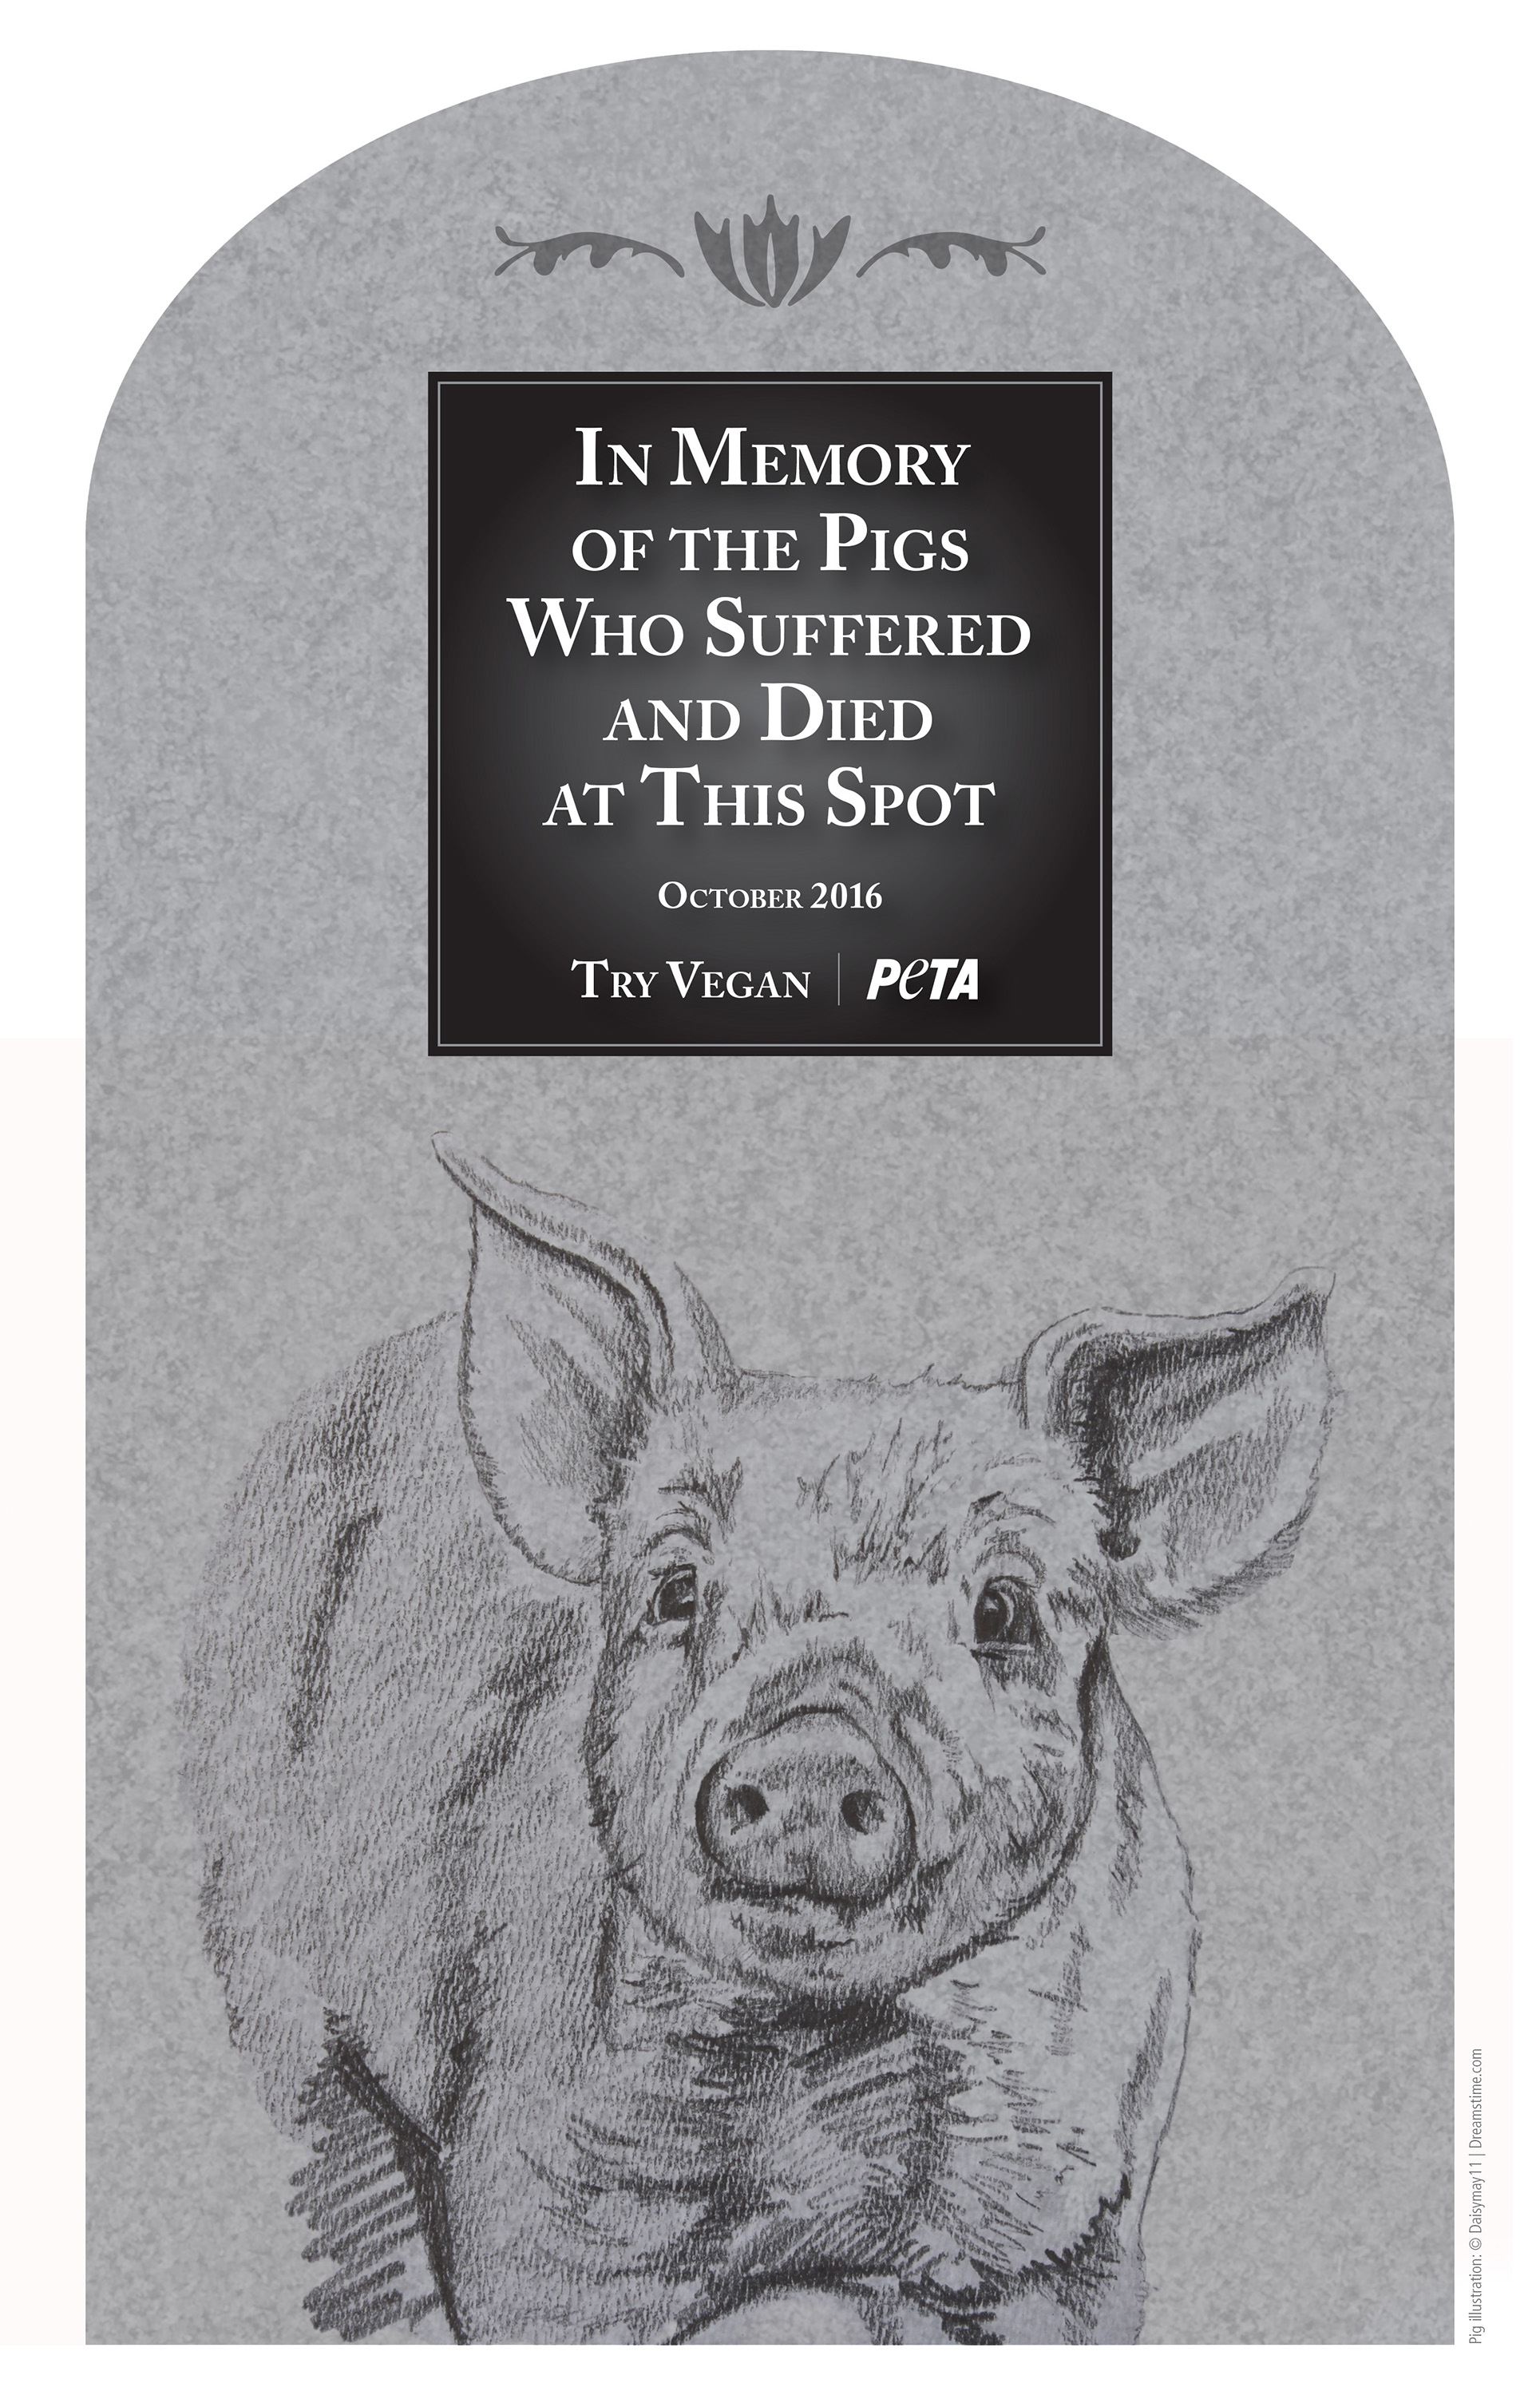 A proposed memorial for pigs that died in a crash in the Virgin River Gorge, Oct. 24, 2016 | Image courtesy of PETA, St. George News